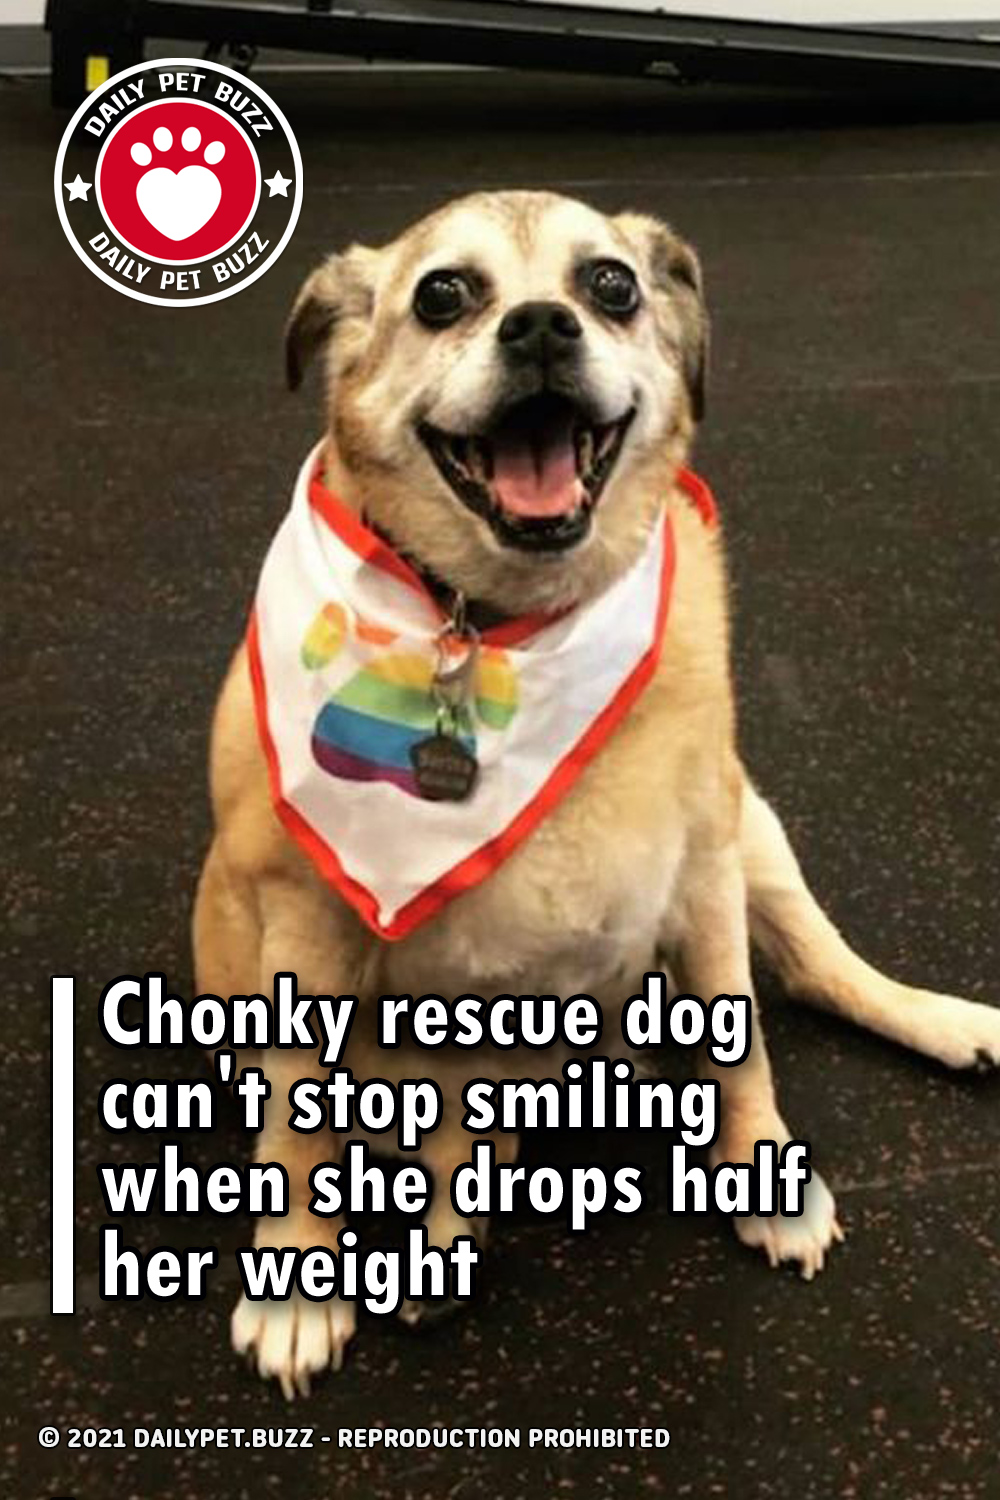 Chonky rescue dog can\'t stop smiling when she drops half her weight